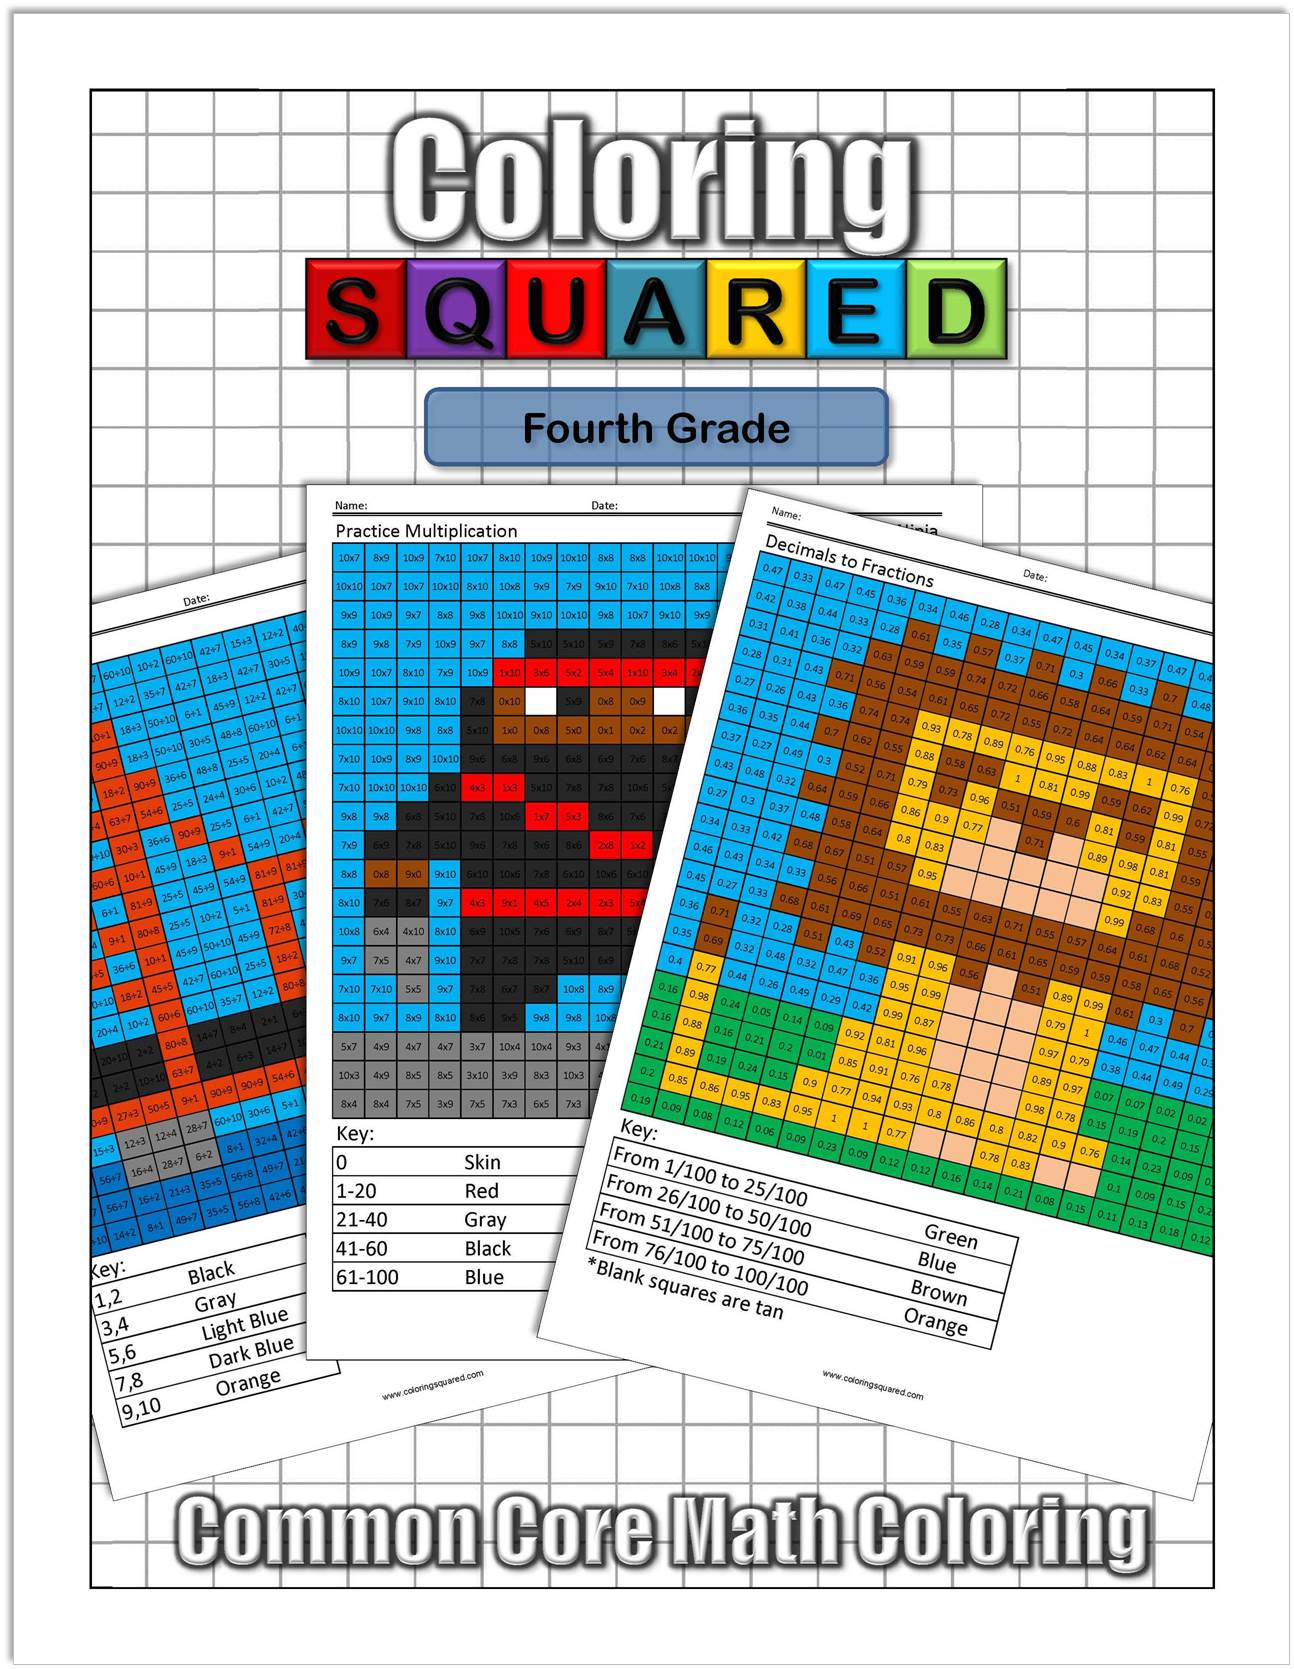 4th Grade Math - Coloring Squared